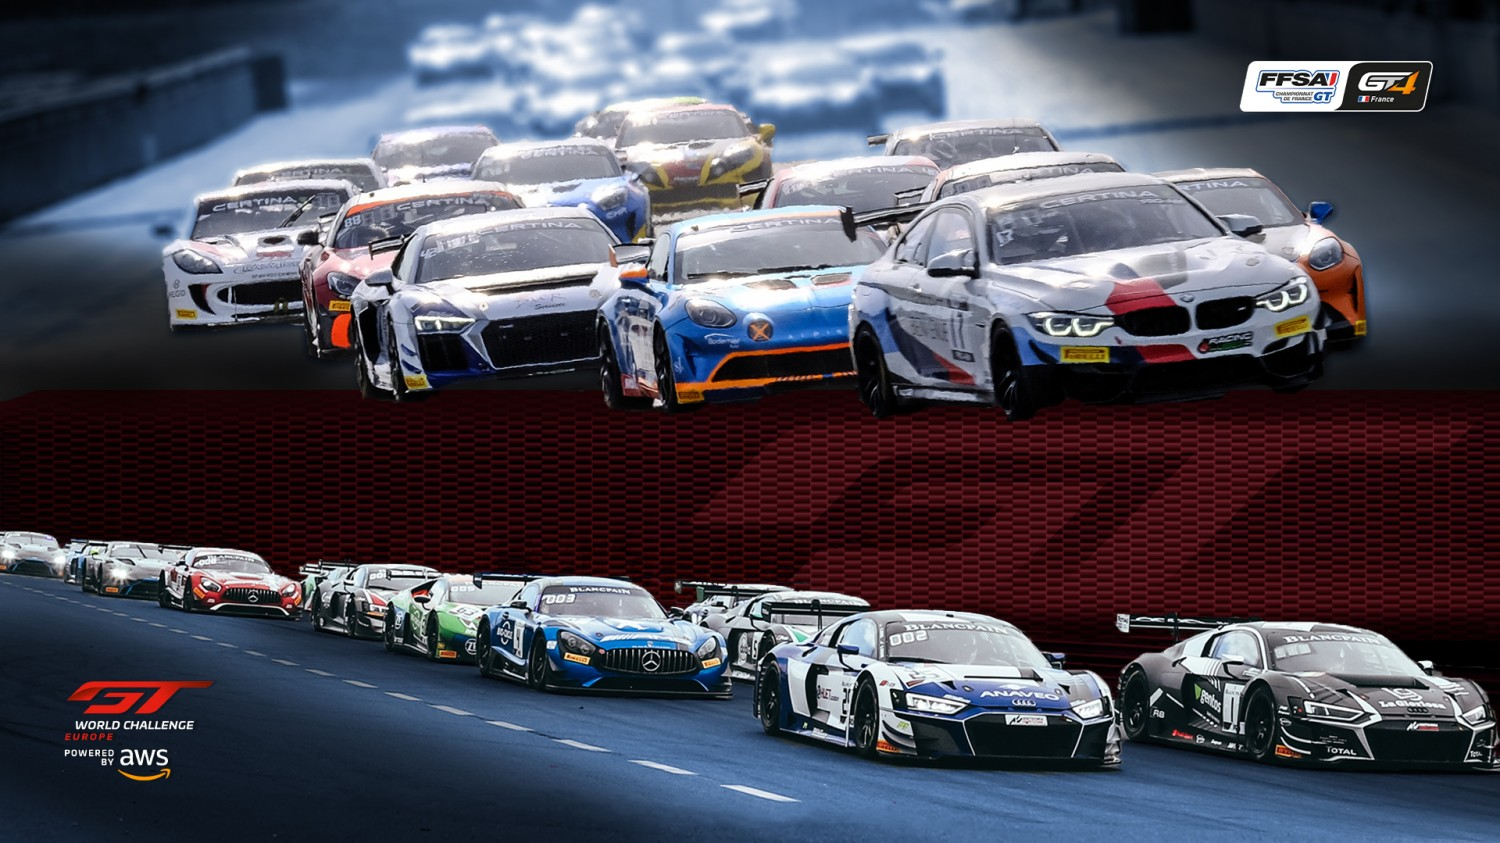 Tickets now on sale for incredible weekend of motorsport action at Magny-Cours